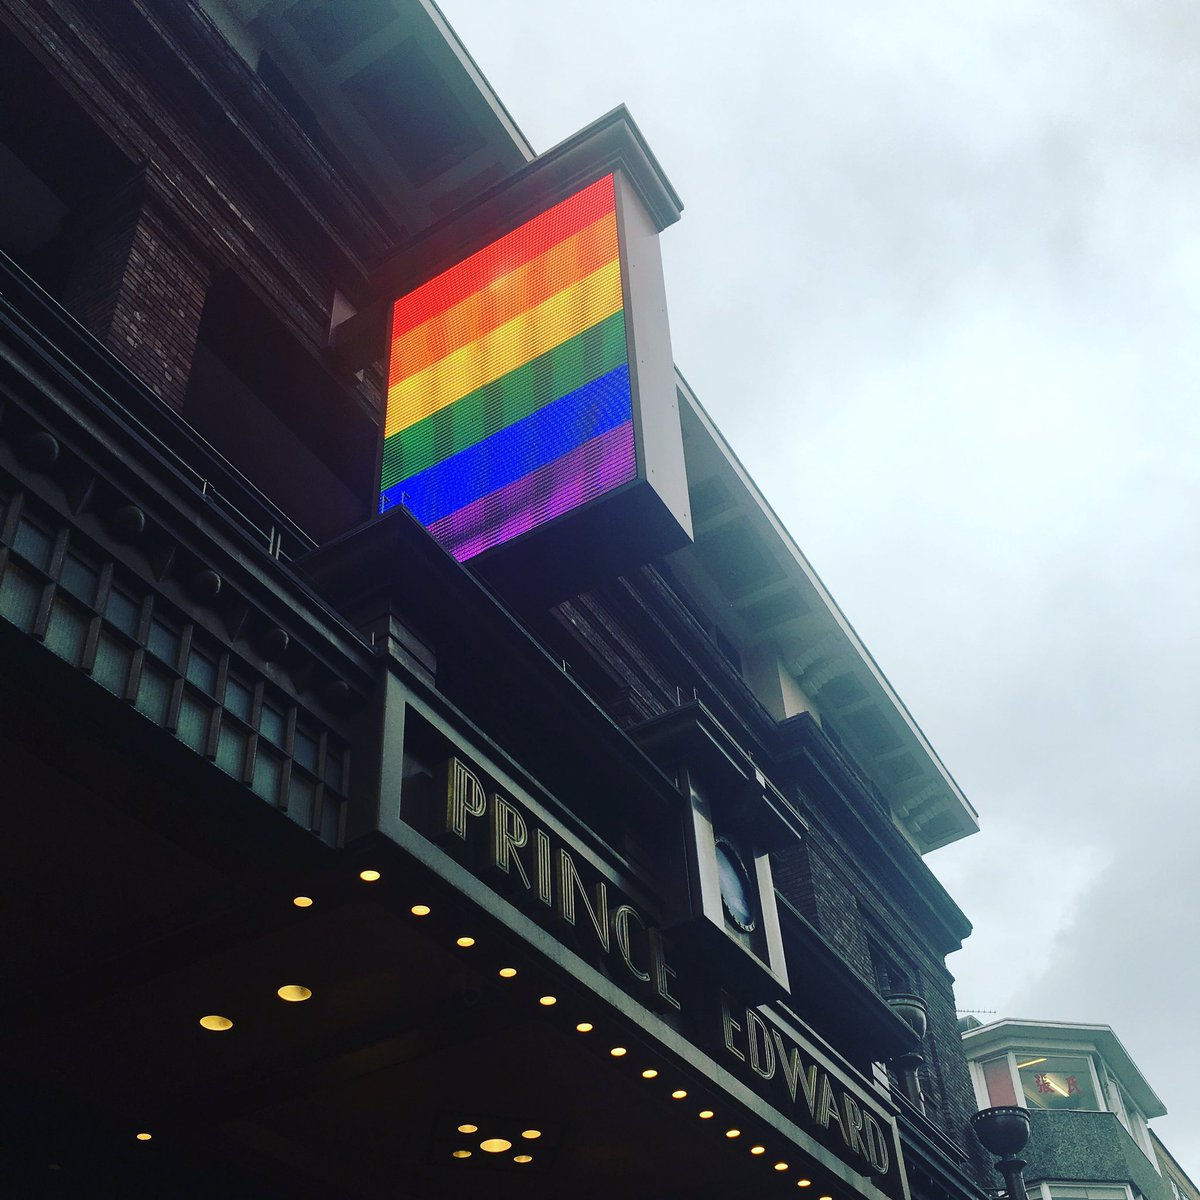 No Aladdin sign tonight at the theatre, just love is love is love #Orlando #LoveWins https://t.co/8gxx0ACvIt